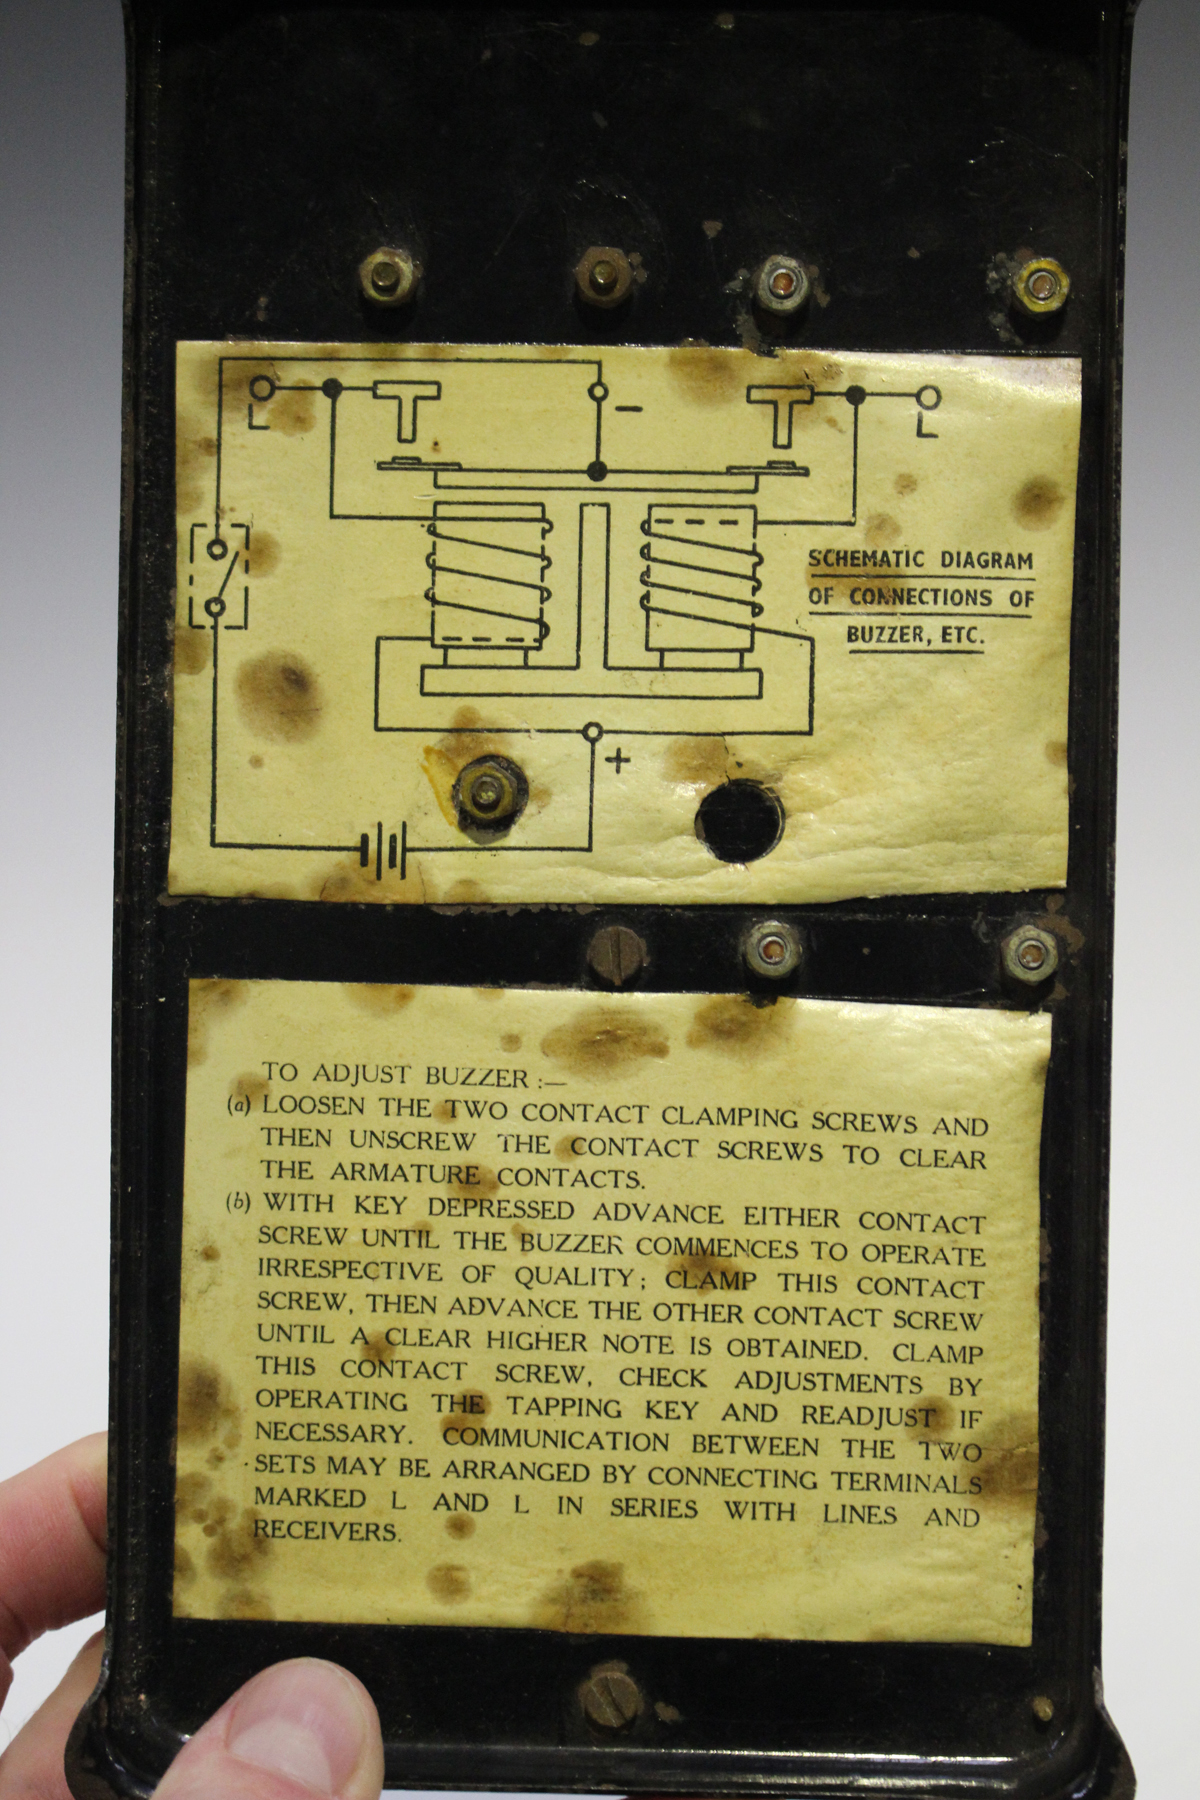 A Second World War Period Morse Code Buzzer Signal Training Set On Electronic Circuit Diagram Plinth Base With Outswept Feet